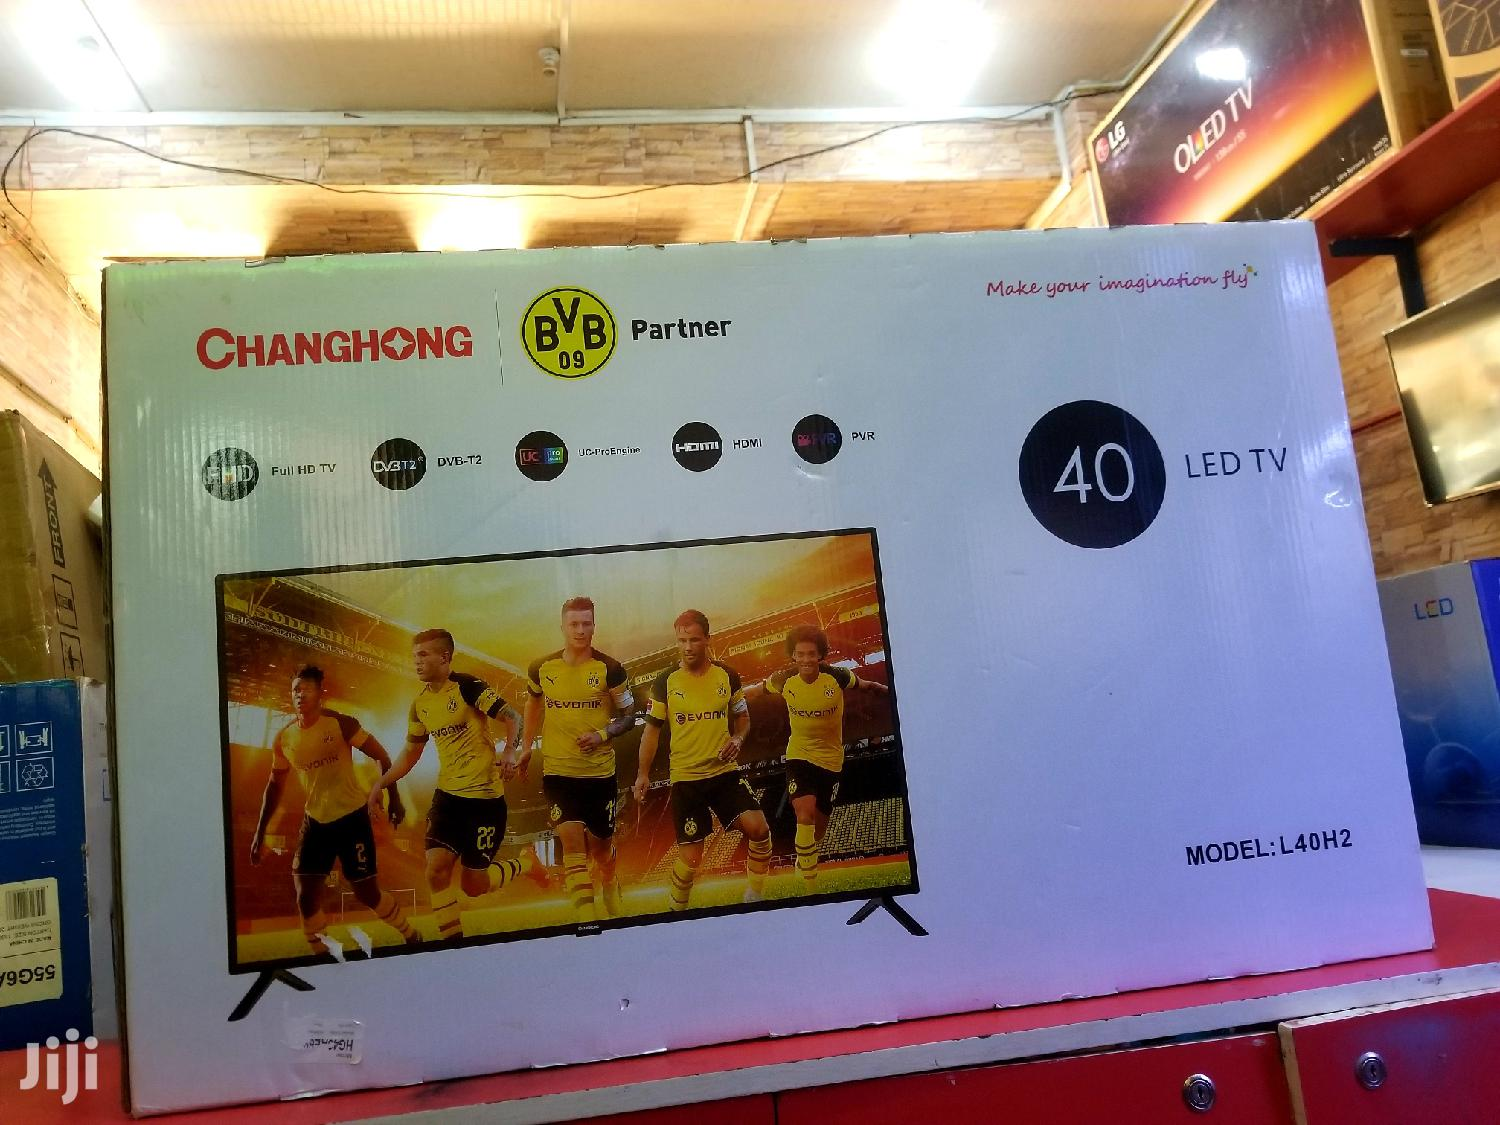 Changhong Flat Screen TV 40 Inches | TV & DVD Equipment for sale in Kampala, Central Region, Uganda